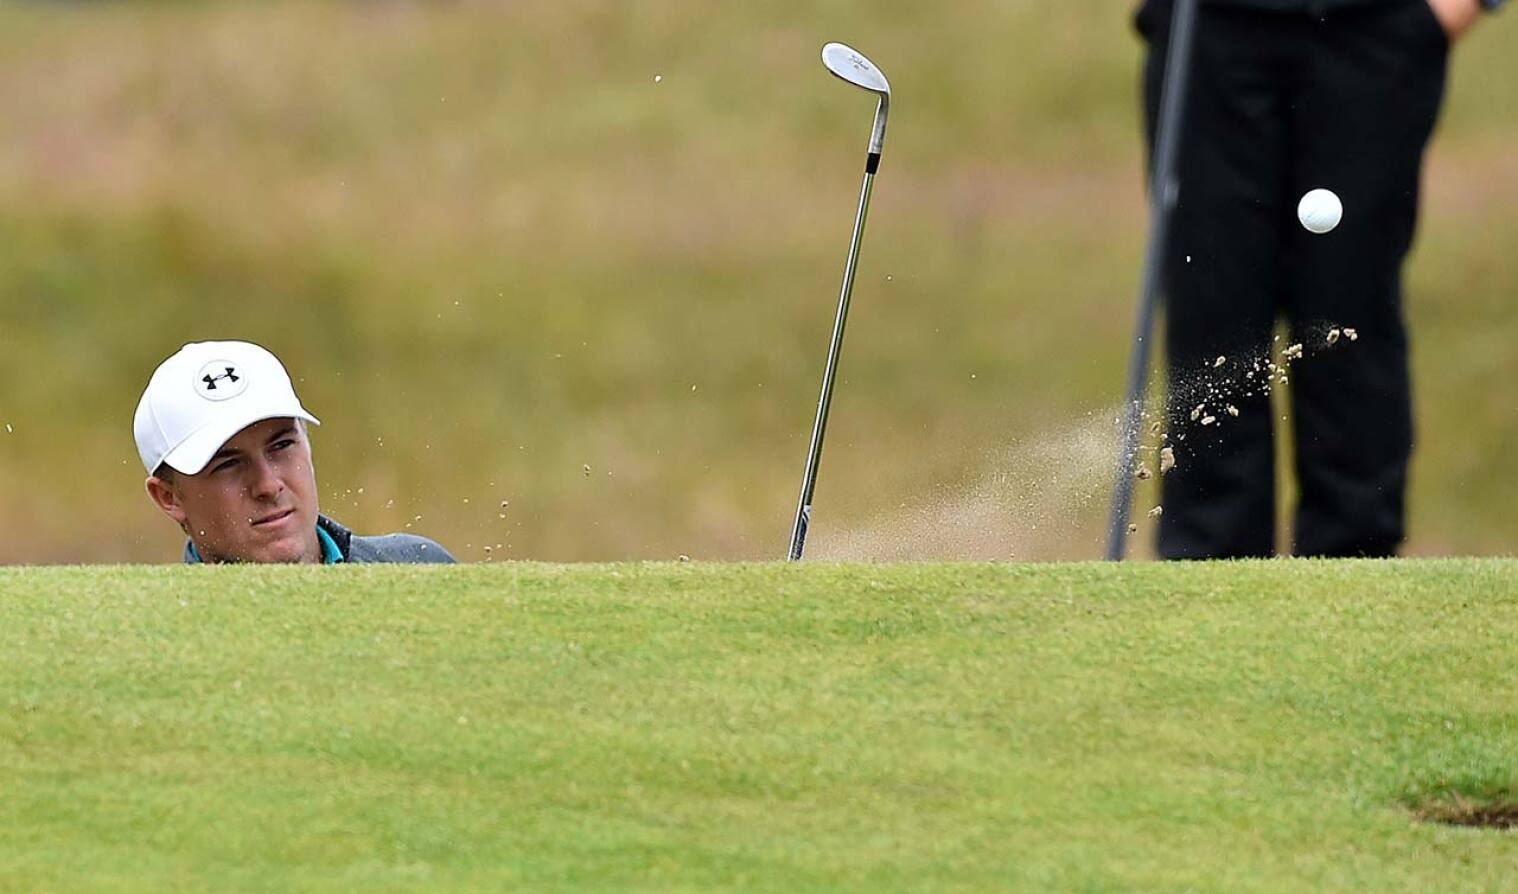 The 2015 Open Championship: Round 1